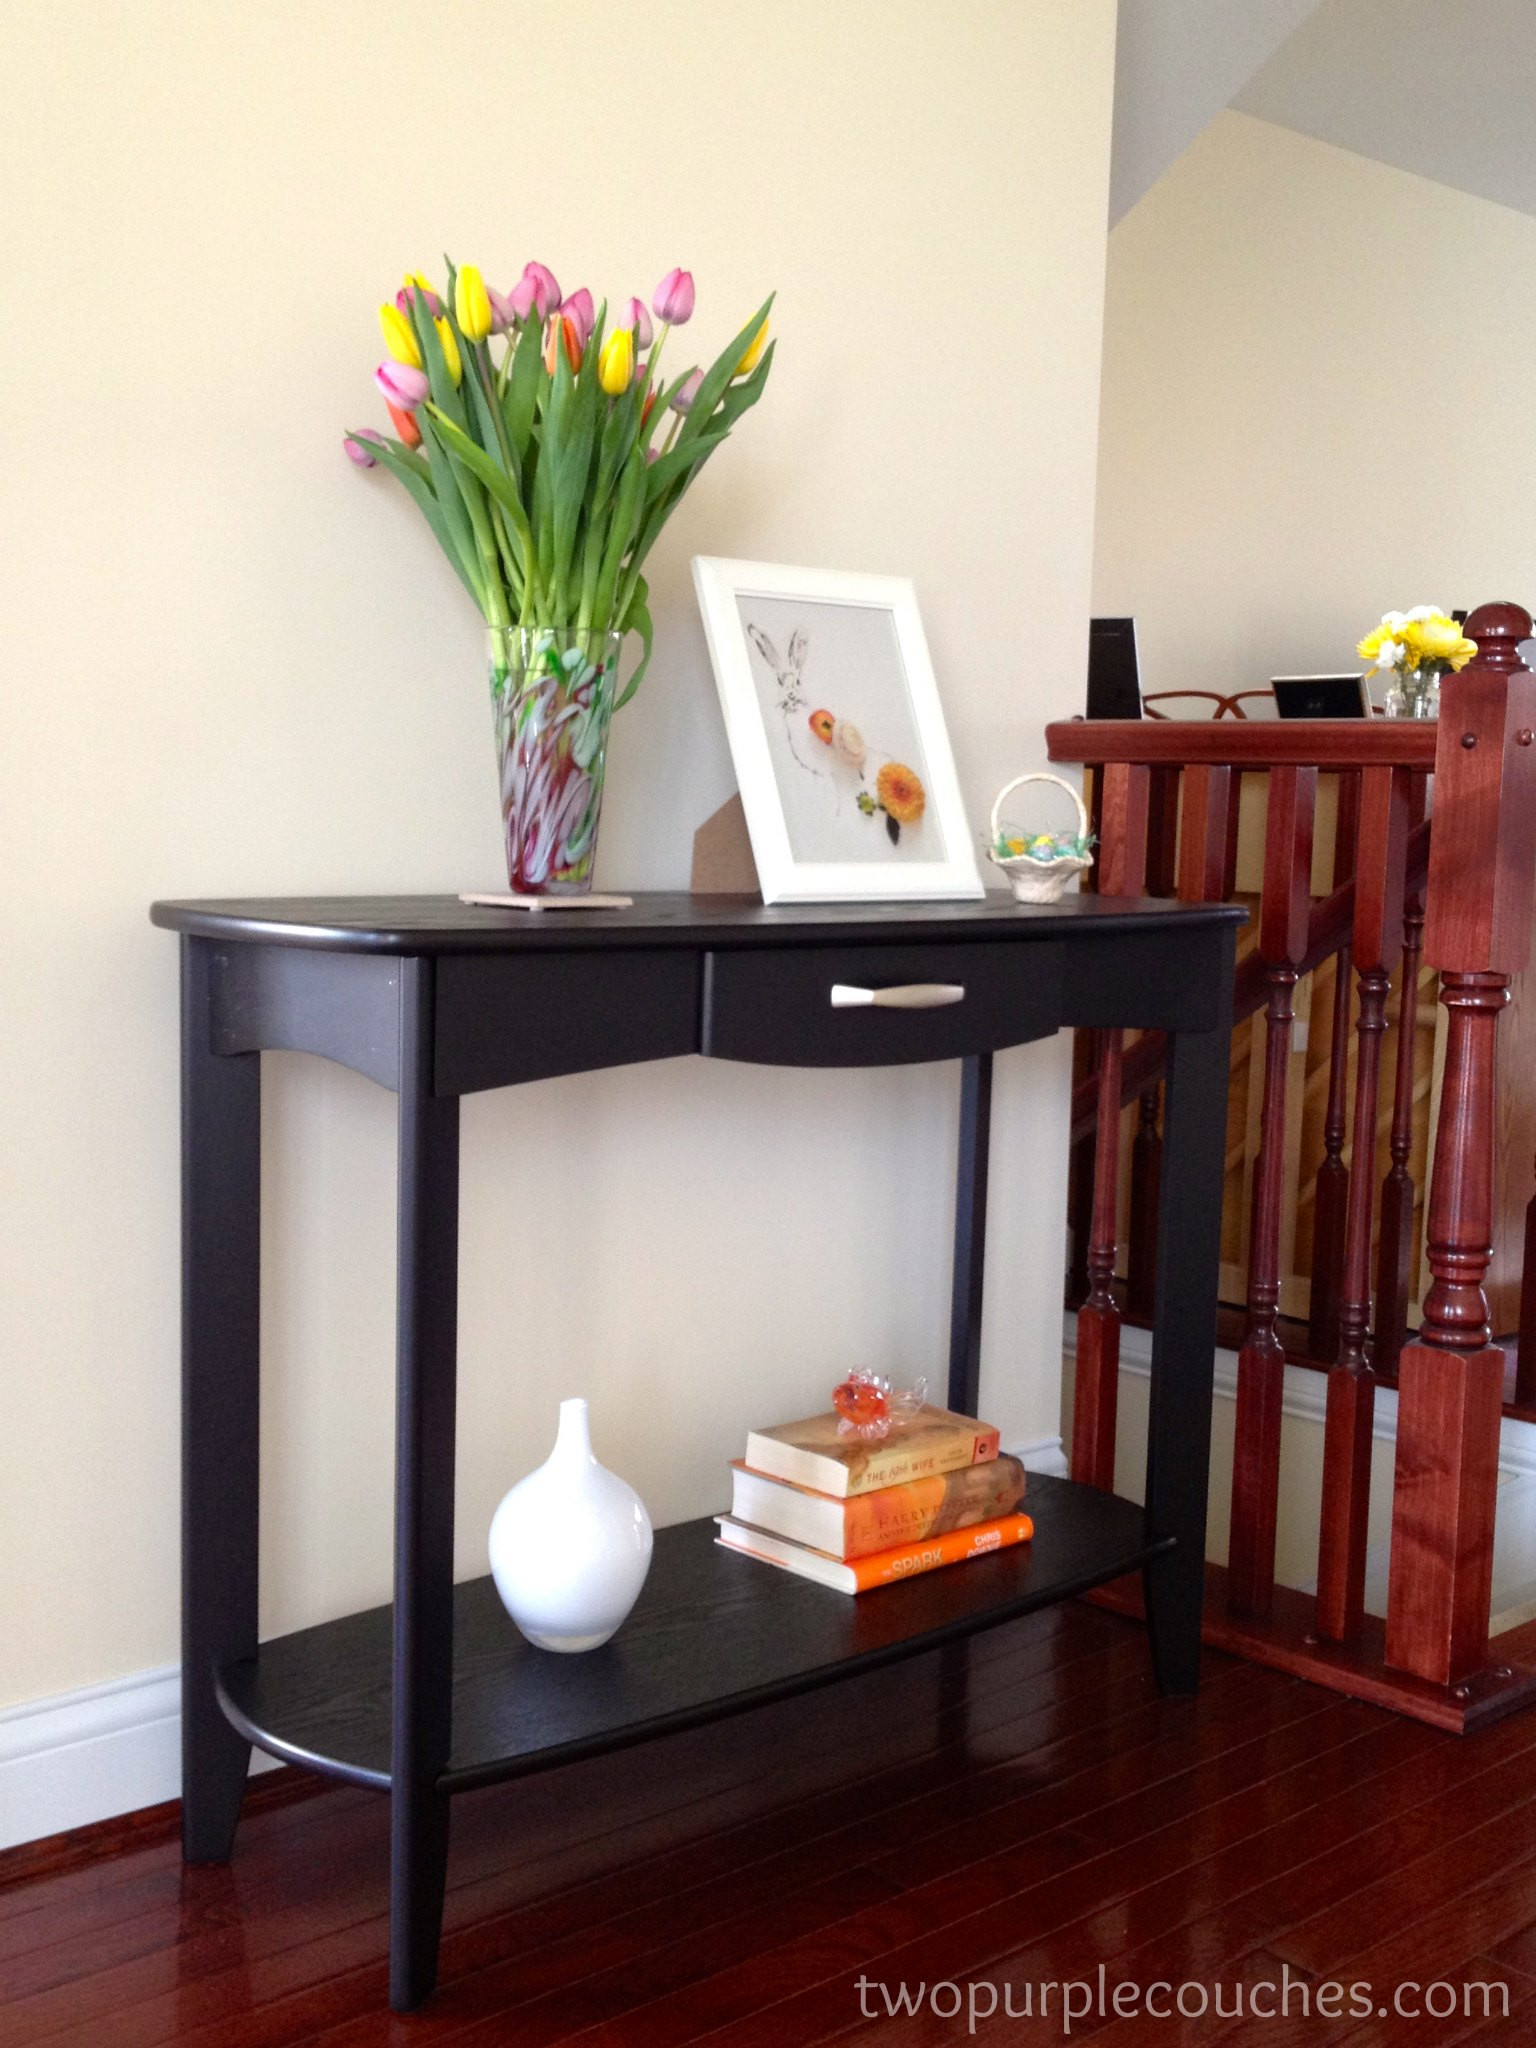 Best ideas about Entryway Console Table . Save or Pin entryway Archives two purple couches Now.